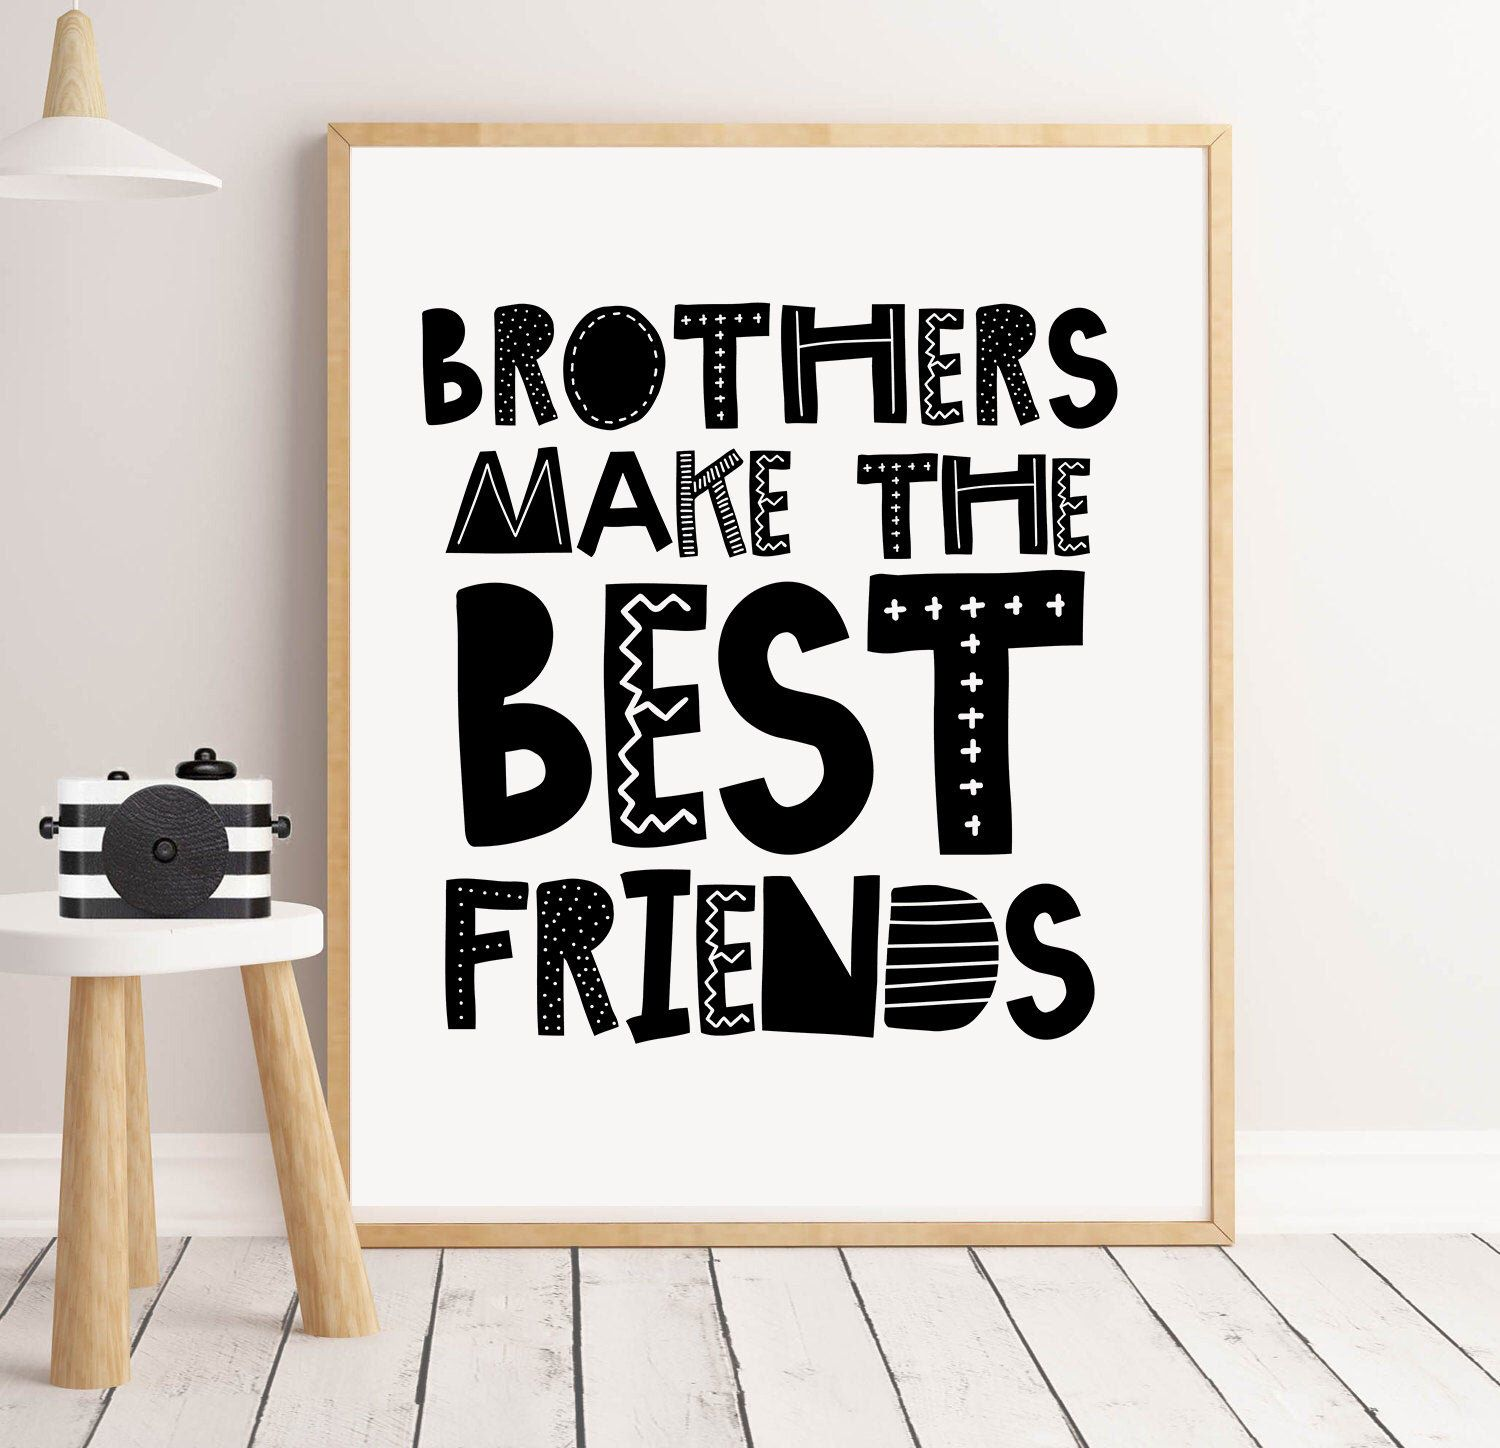 Brothers Make The Best Friends Wall Art Monochrome Print For Etsy Boy Room Art Toddler Boys Room Boys Room Decor